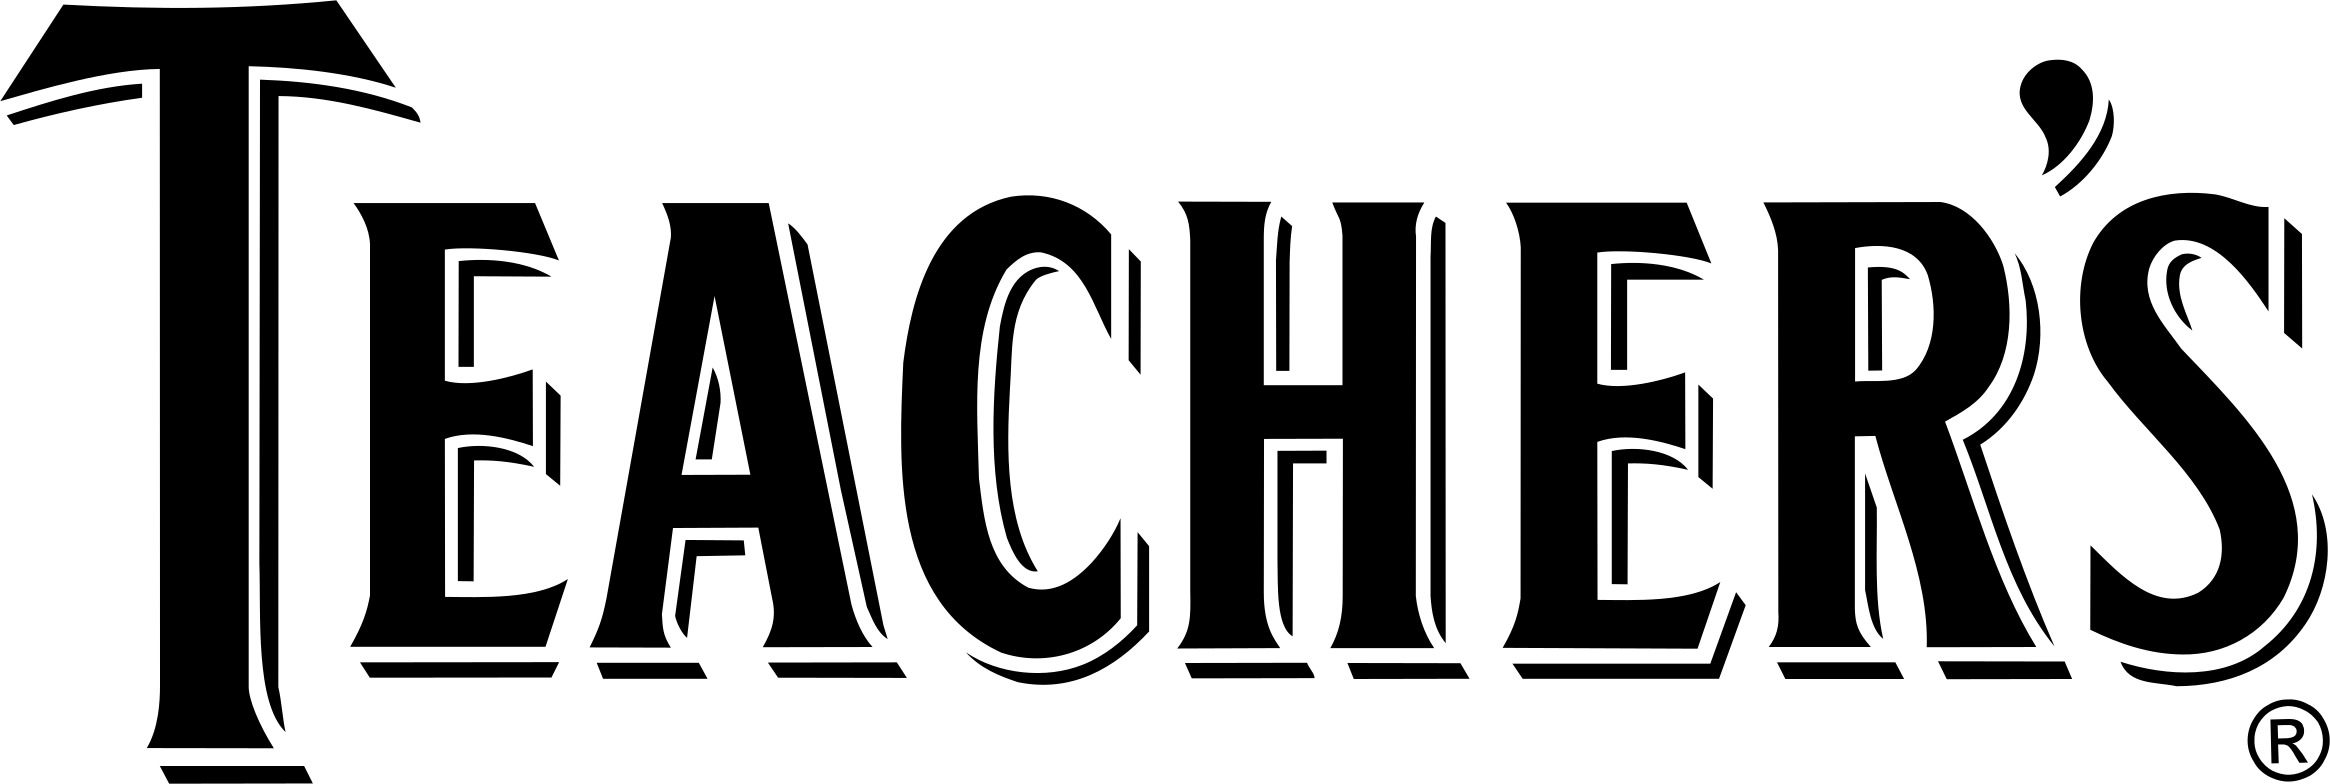 Teacher's logo